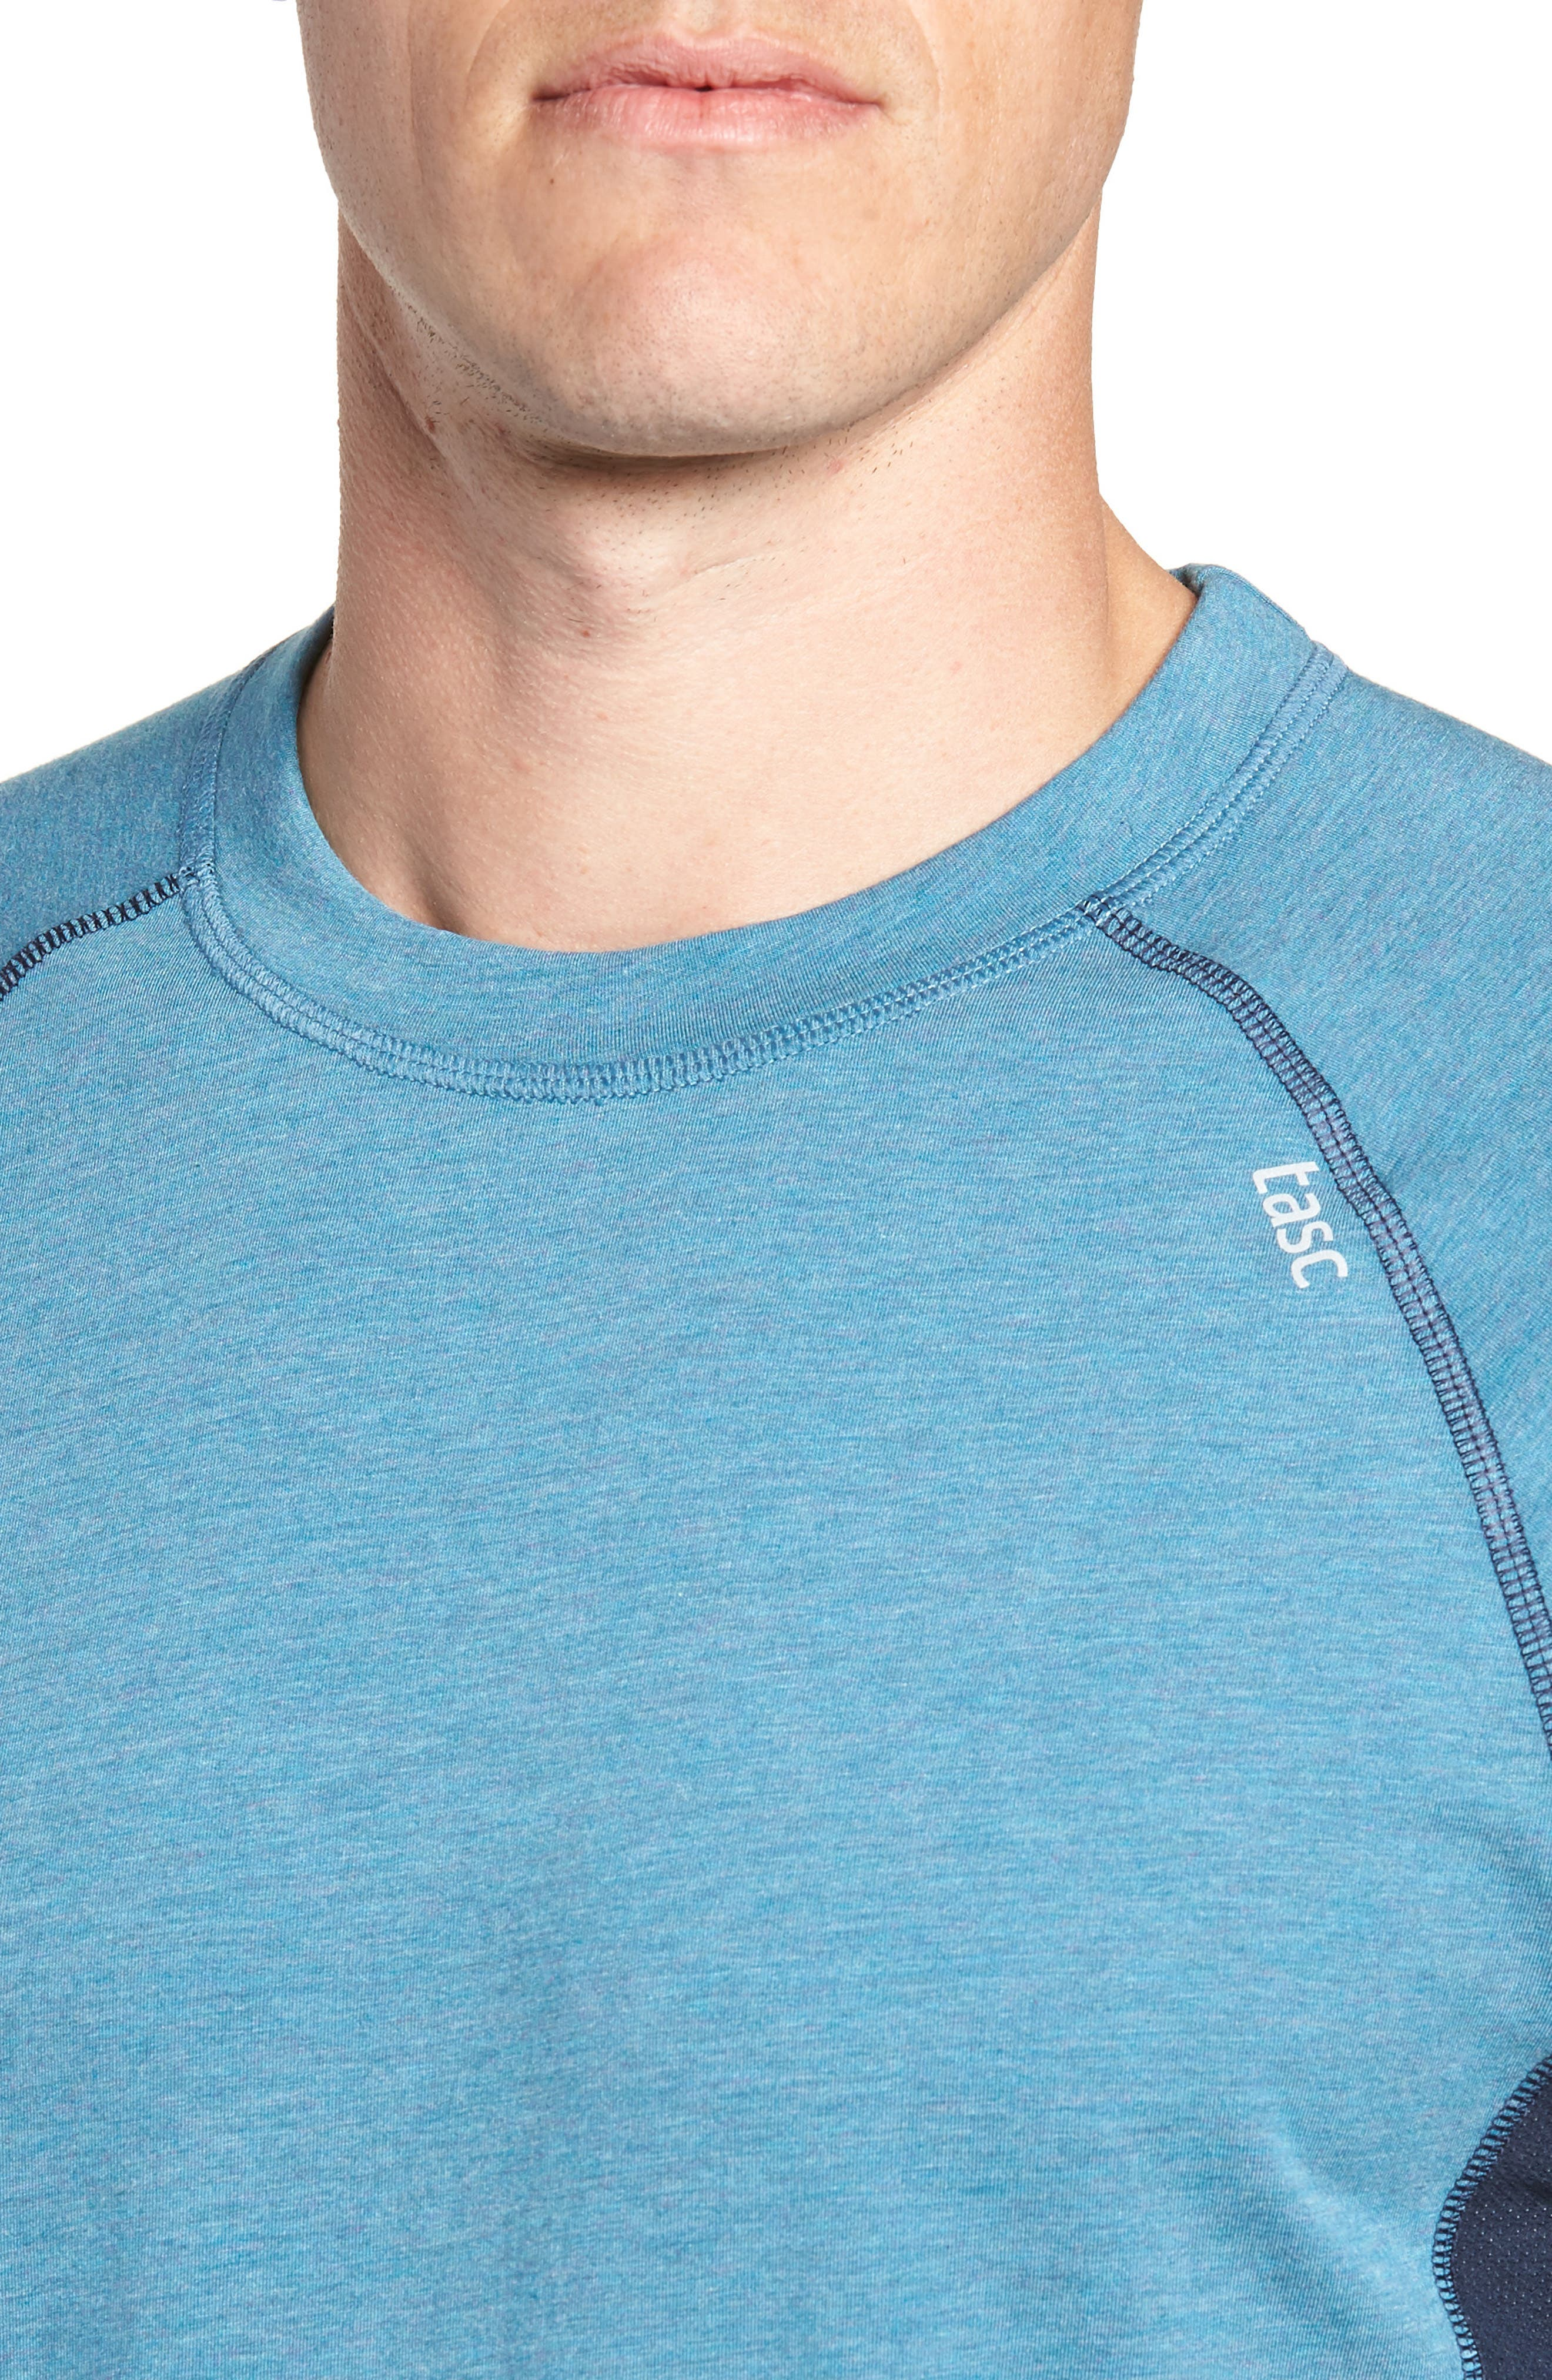 TASC PERFORMANCE, Charge II T-Shirt, Alternate thumbnail 5, color, TRANQUILITY SEA HEATHER